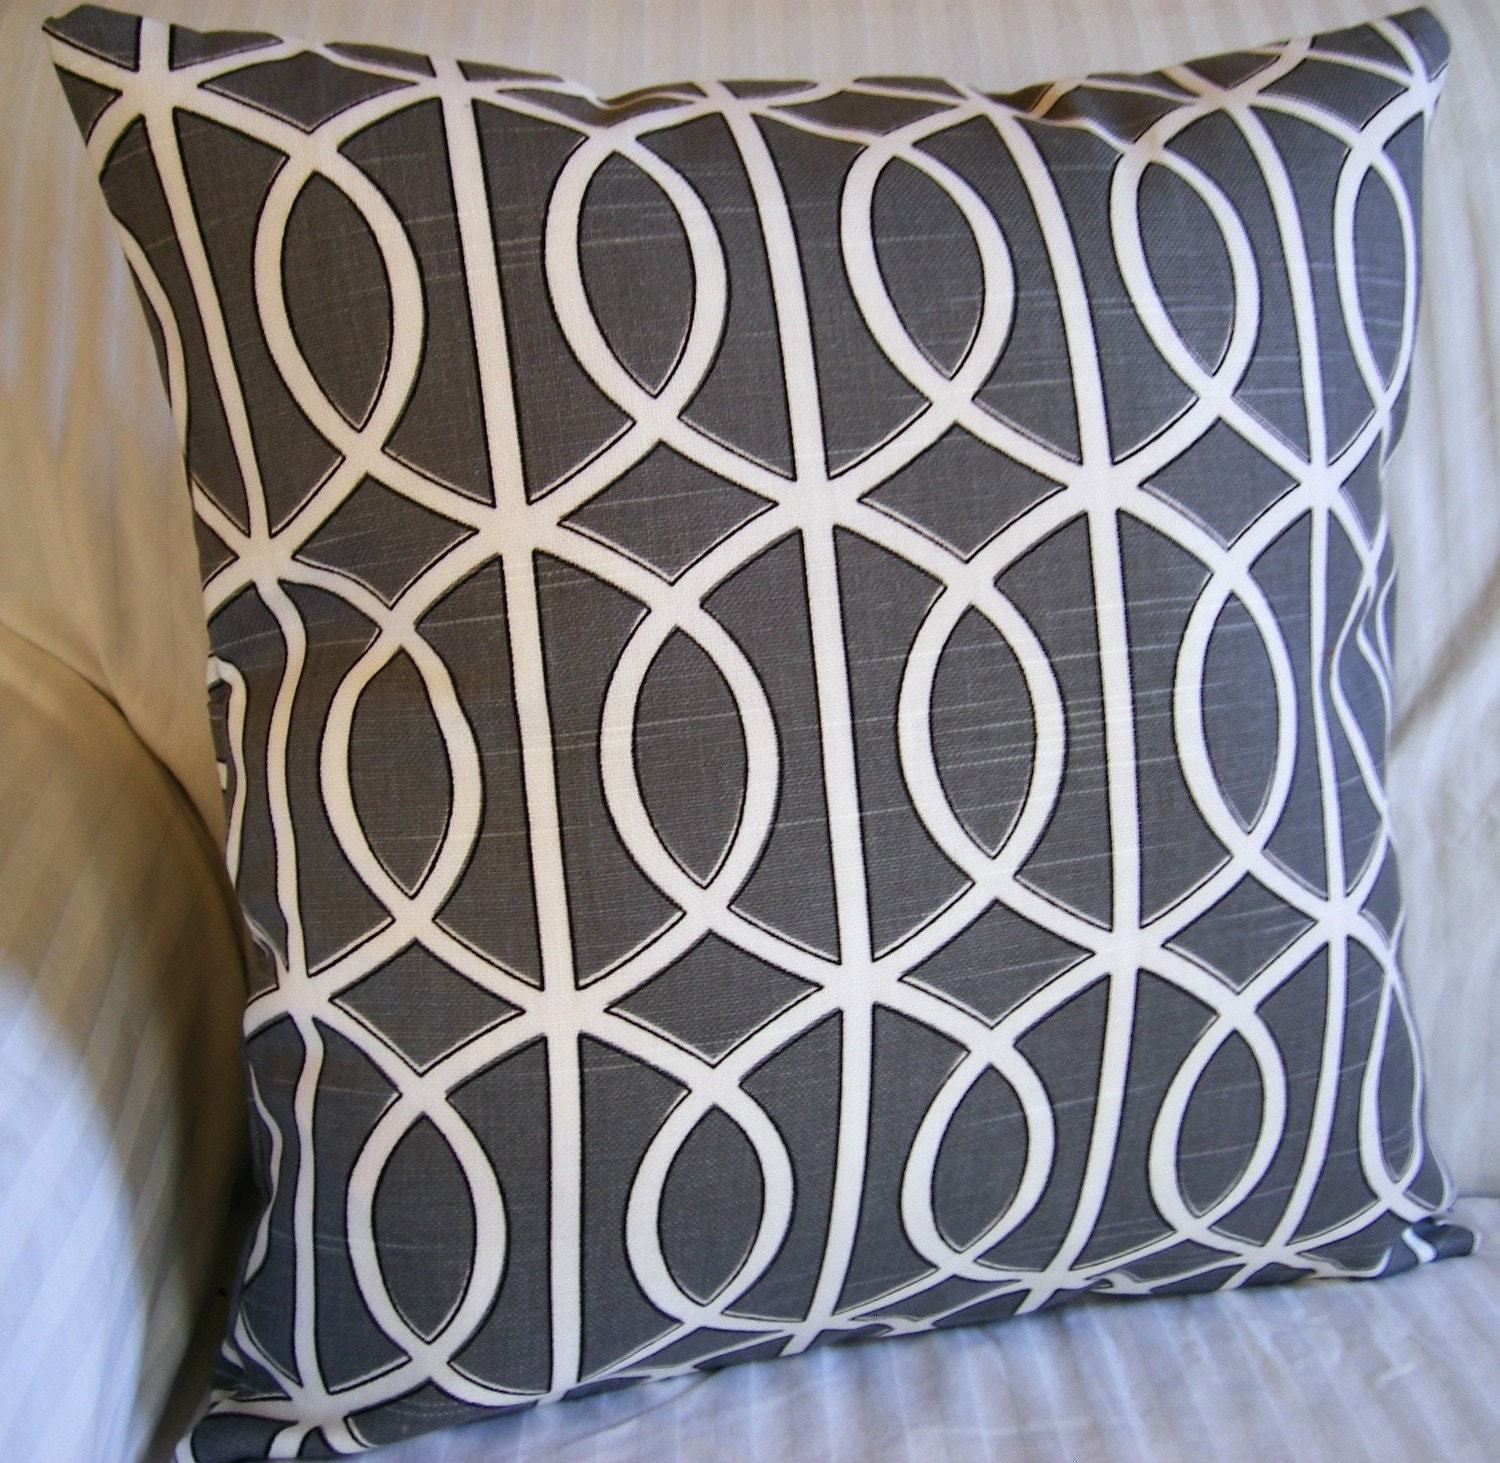 Pillow, Throw pillow cover, cushion cover, outdoor pillow 16x16 handmade with Designer Fabric Charcoal Gray